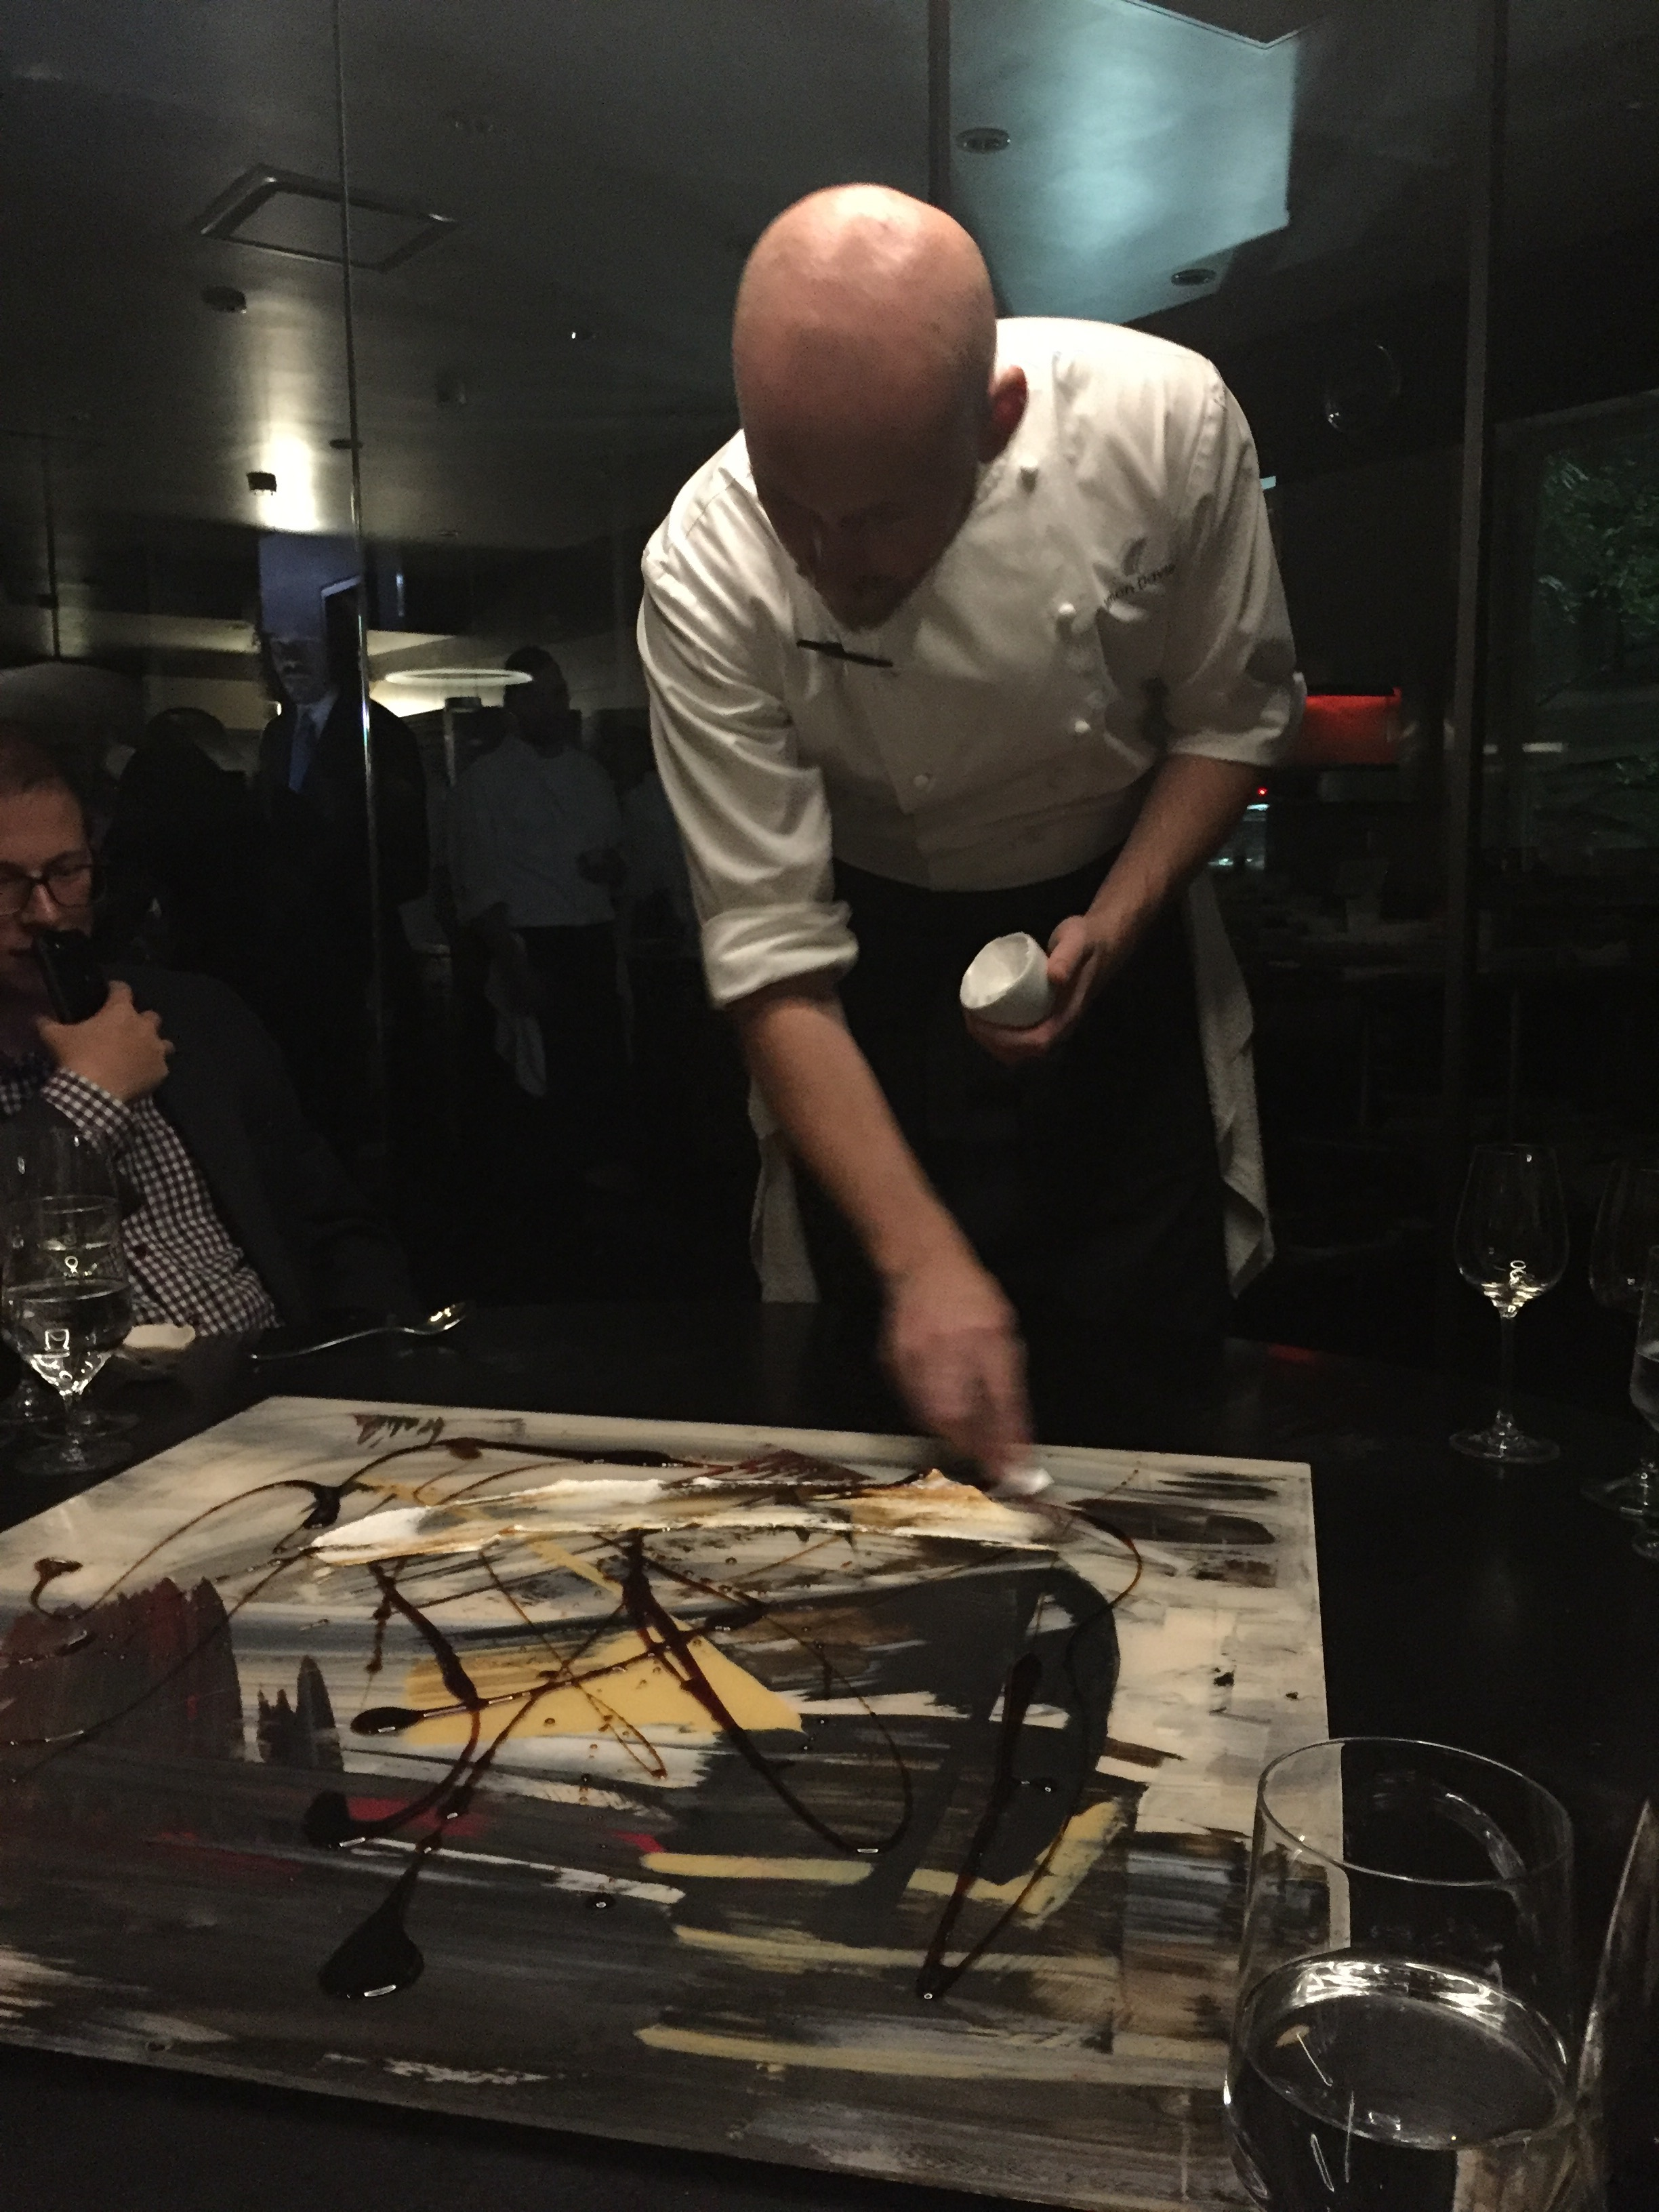 """Dessert course #2: When the lights suddenly turned off in the kitchen, music started bumping, they removed a piece of art hanging from the ceiling above our table,and used it as the foundation for the communal dessert the chefs then """"painted"""" for us."""